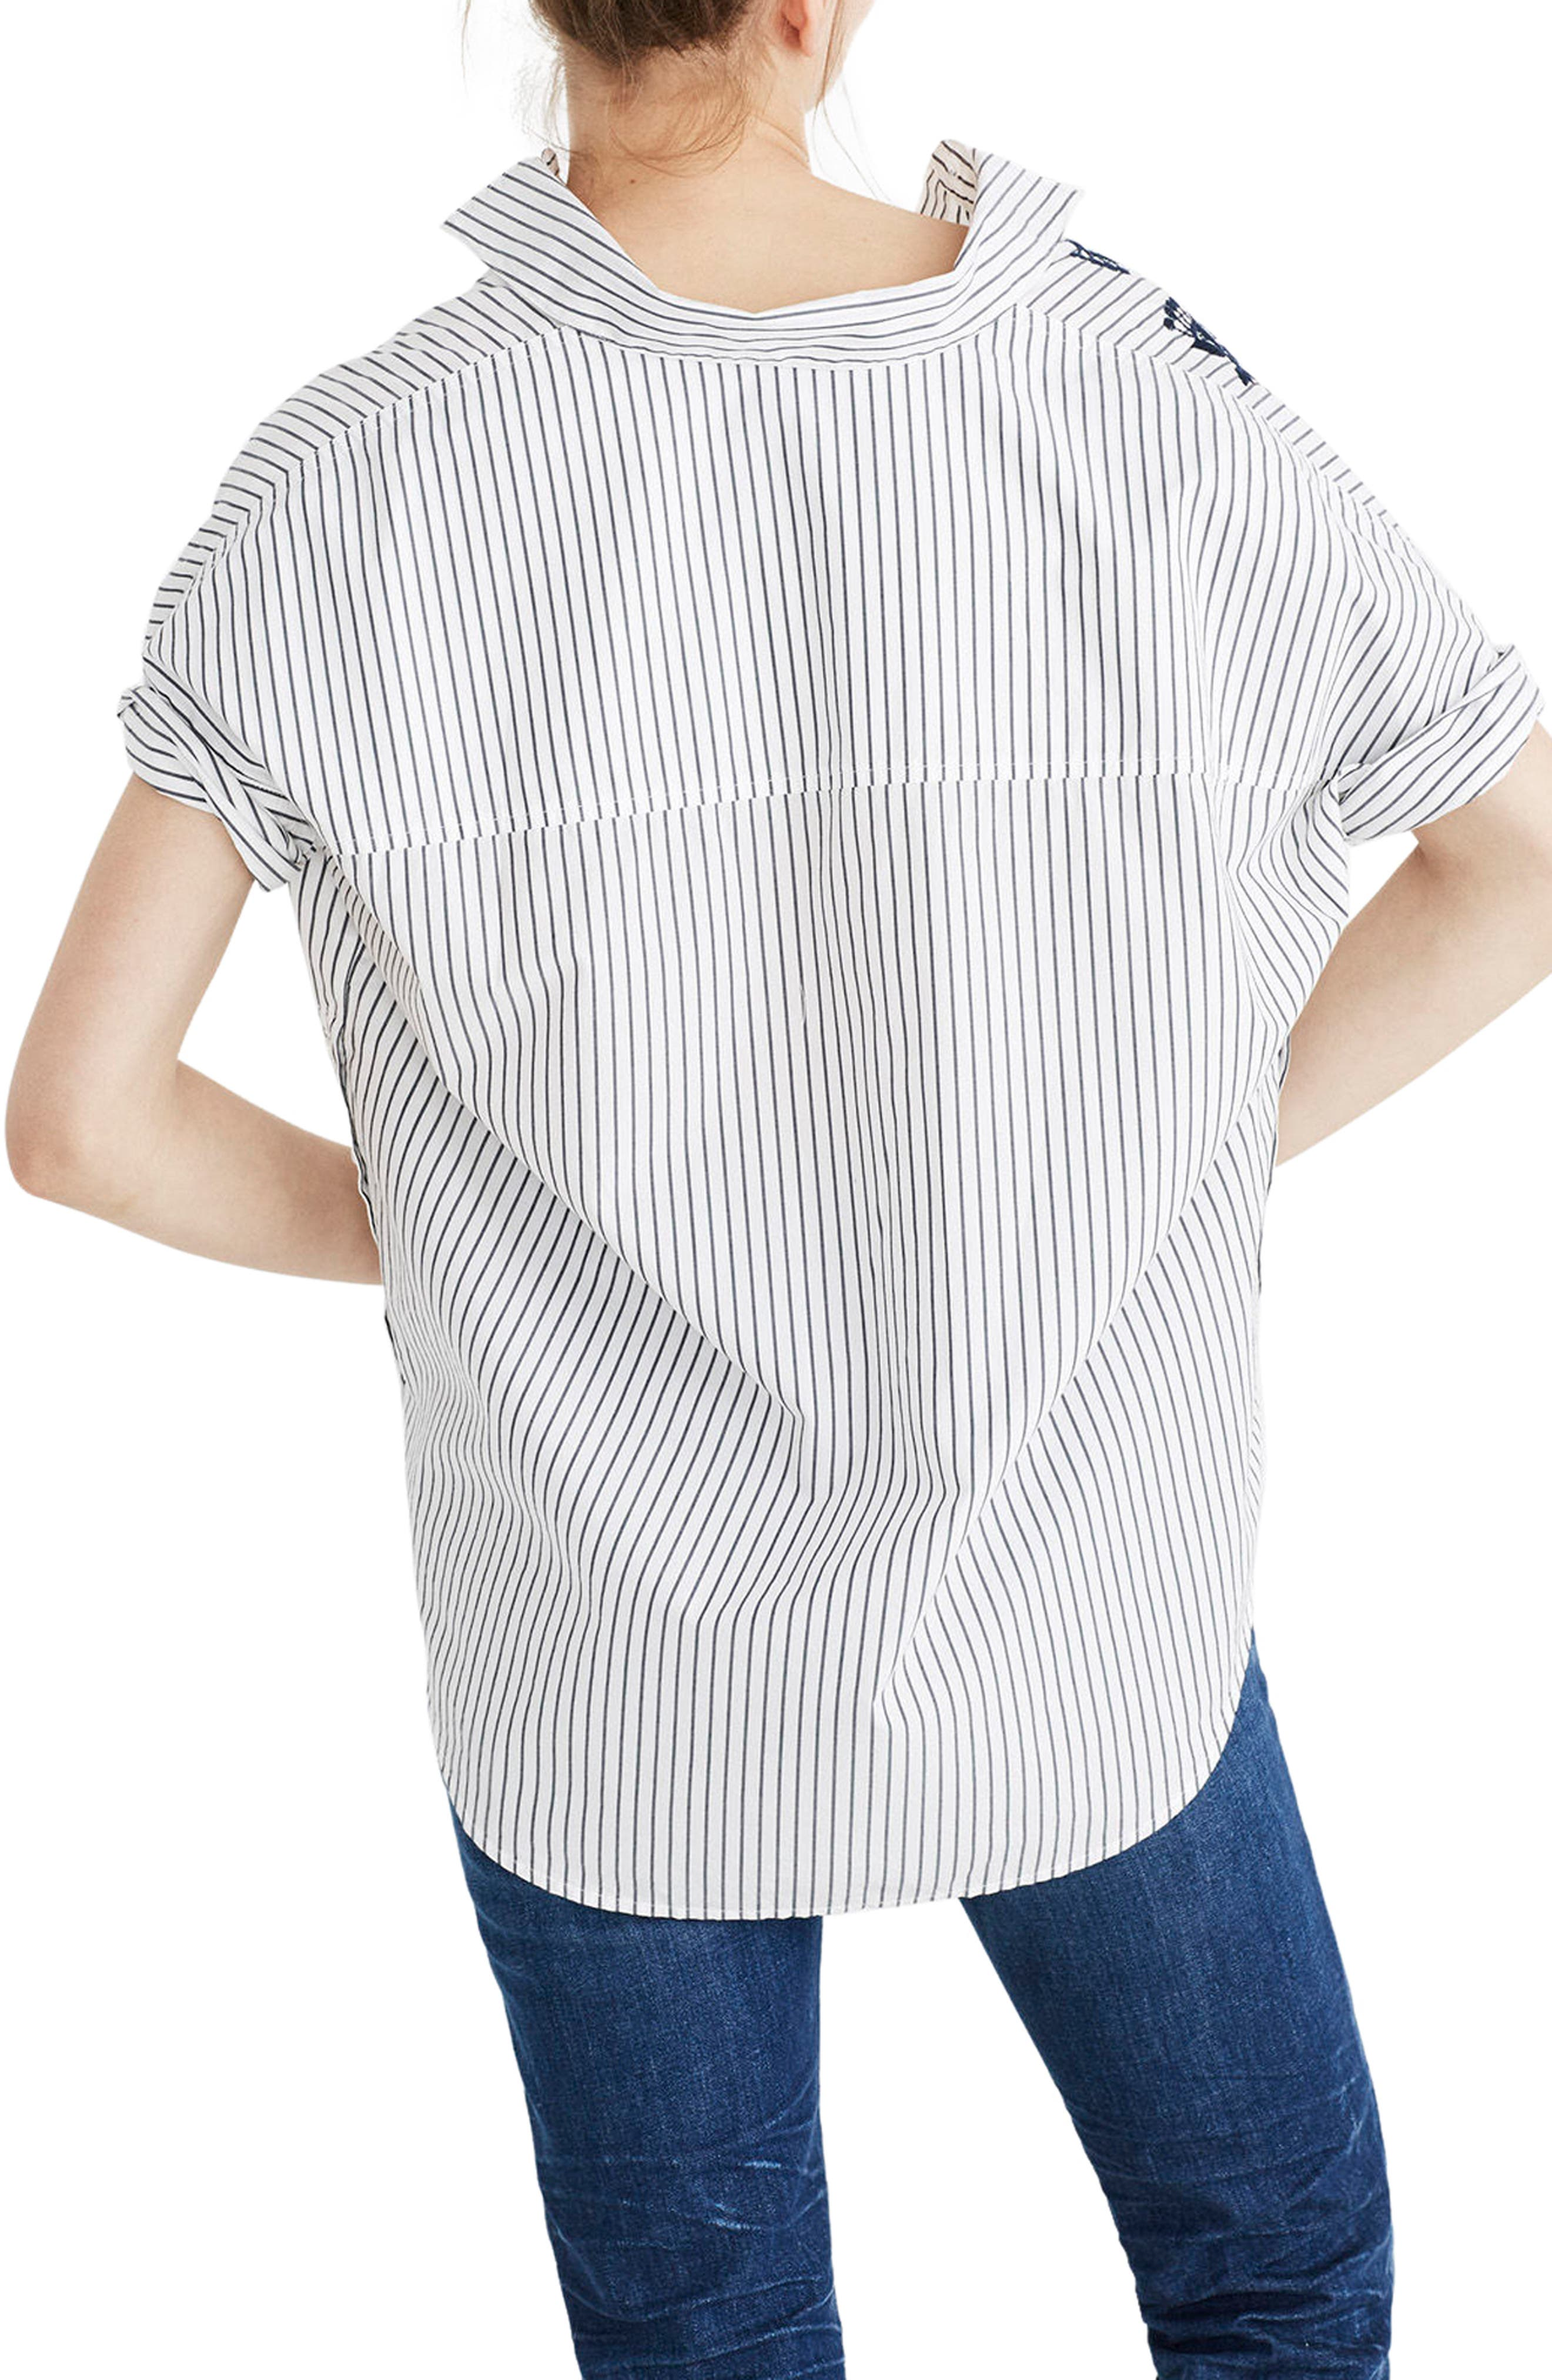 Embroidered Courier Shirt,                             Alternate thumbnail 2, color,                             020